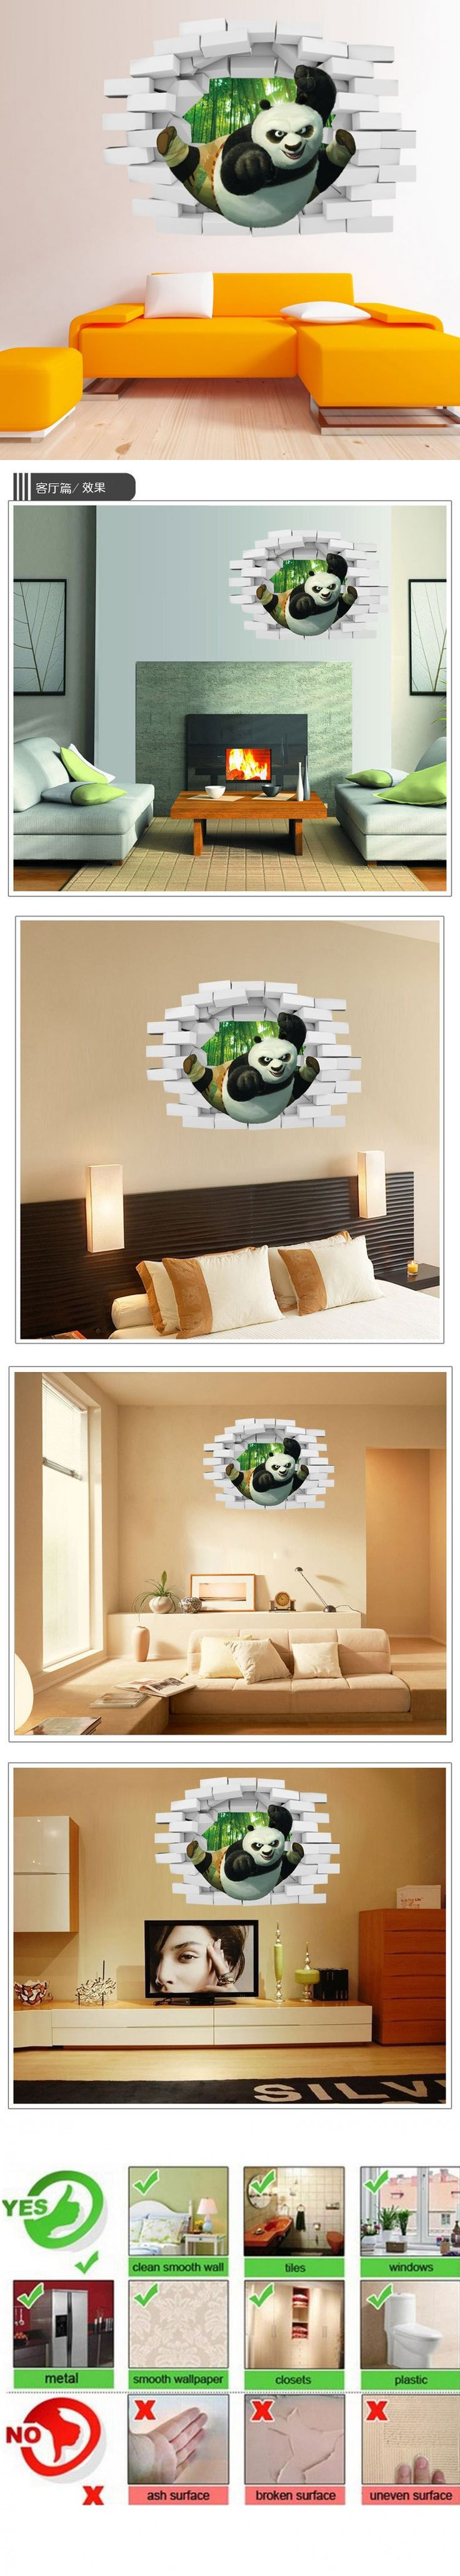 The 25 best panda 3d ideas on pinterest cute drawings of cute cartoon kungfu panda wall sticker pvc wall stickers home decor kids bedroom wallpaper poster mural amipublicfo Image collections